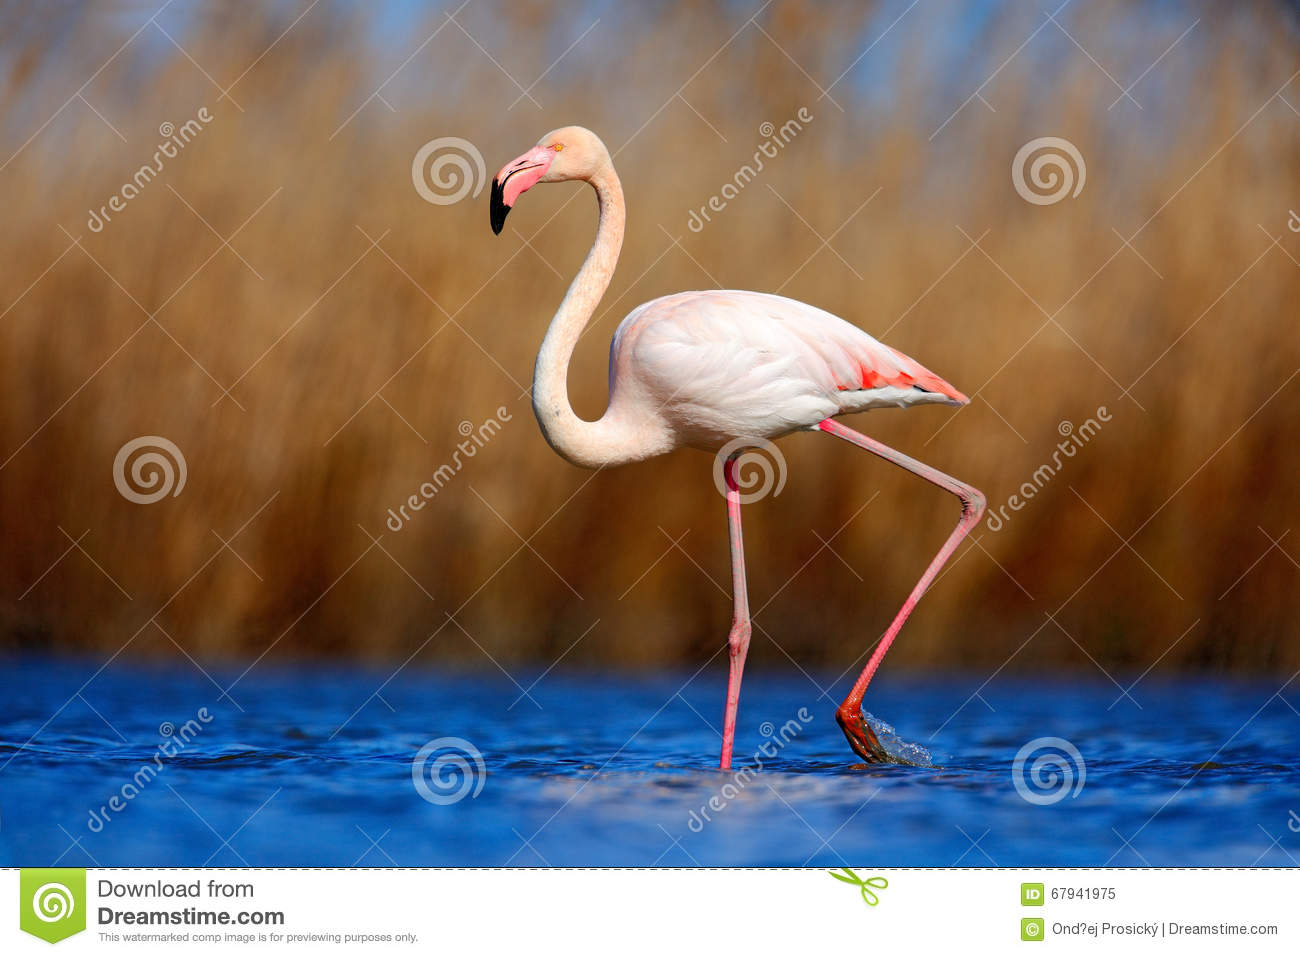 Greater Flamingo, Phoenicopterus ruber, beautiful pink big bird in dark blue water, with evening sun, reed in the background, anim